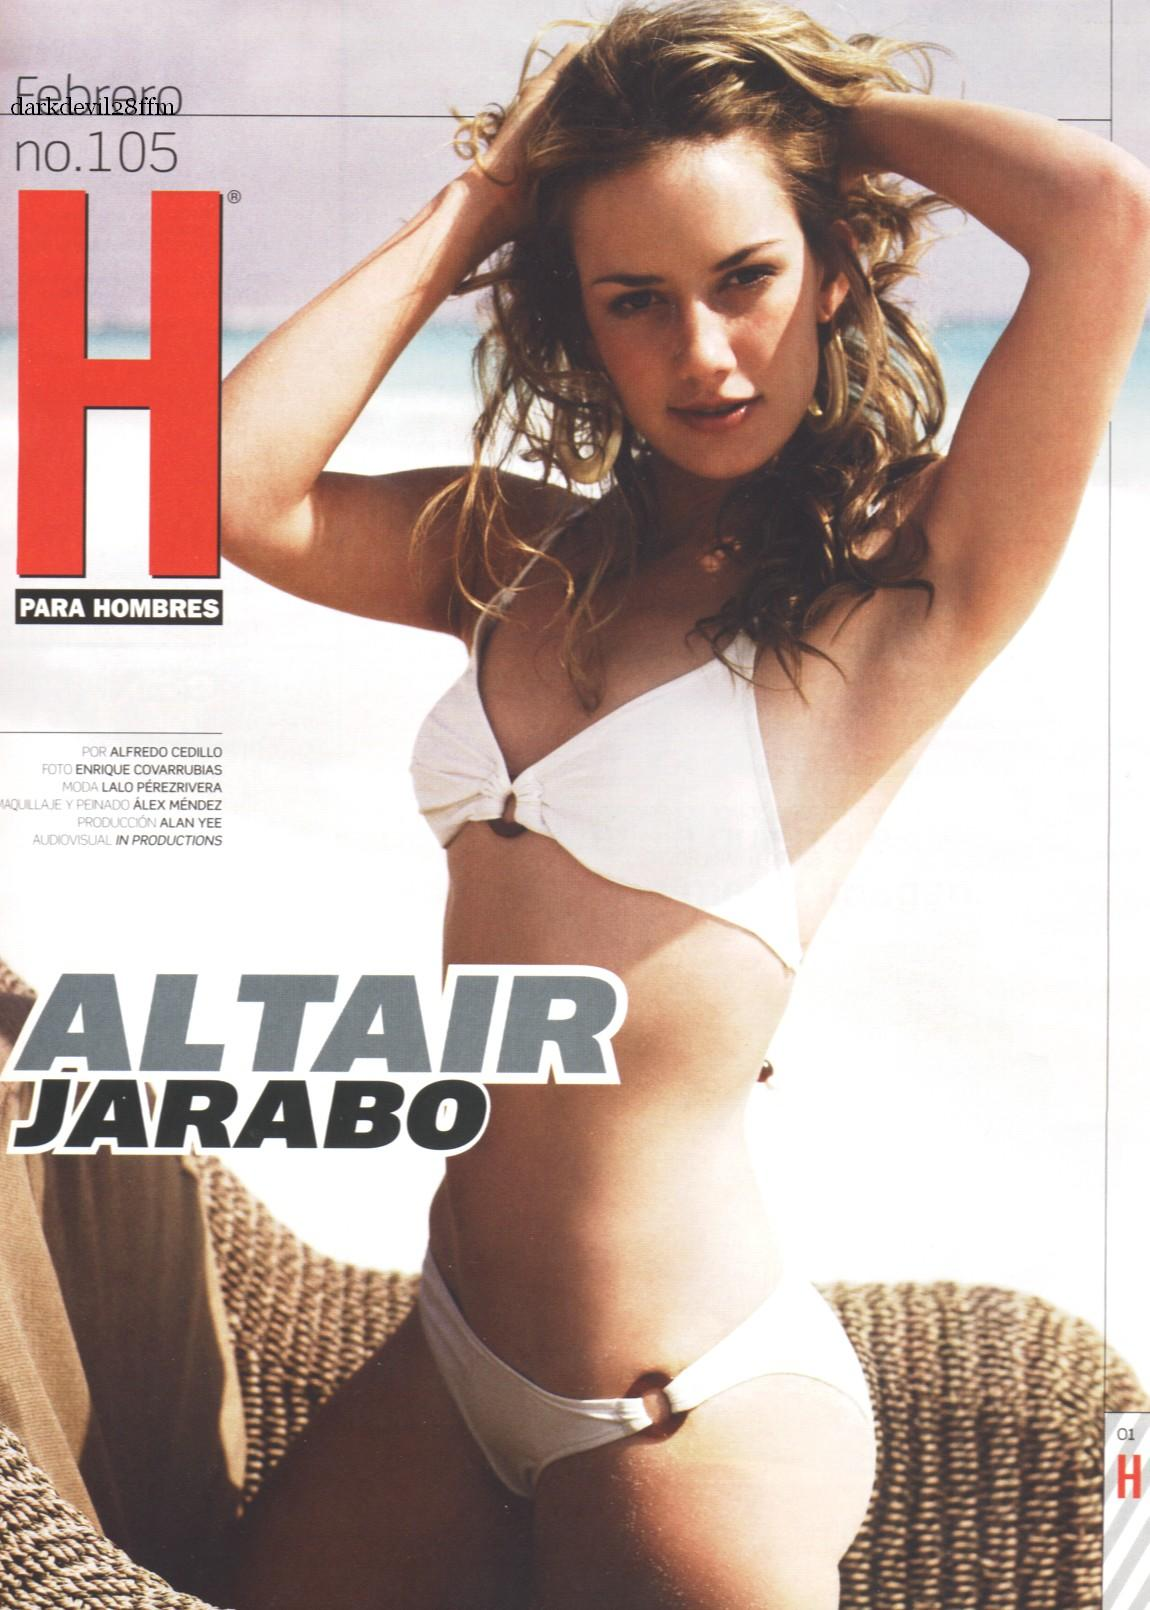 Altair Jarabo Naked altair jarabo - page 2 pictures, naked, oops, topless